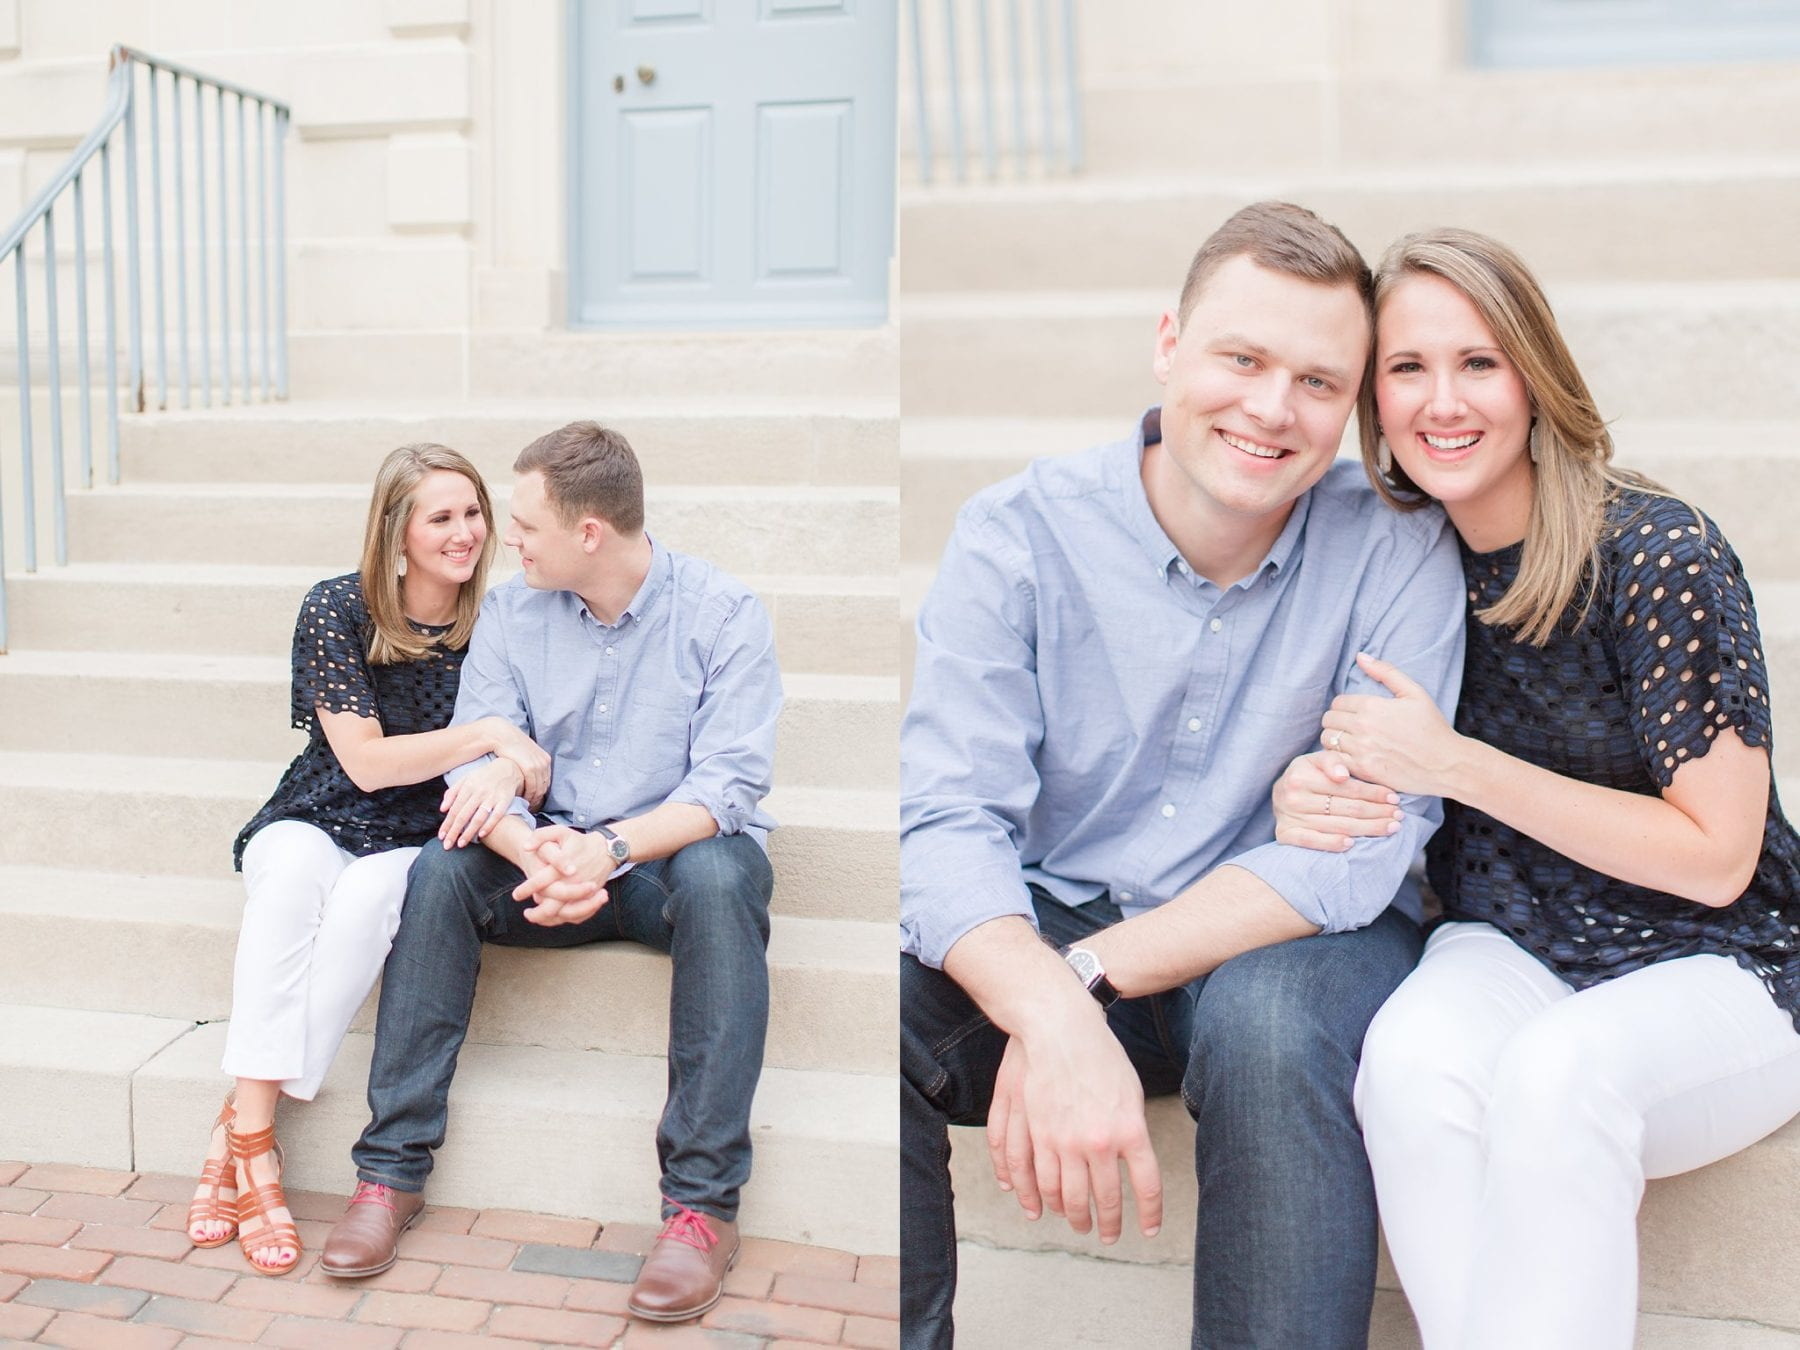 Springtime Old Town Alexandria Engagement Session Matt & Maxie Megan Kelsey Photography-279.jpg